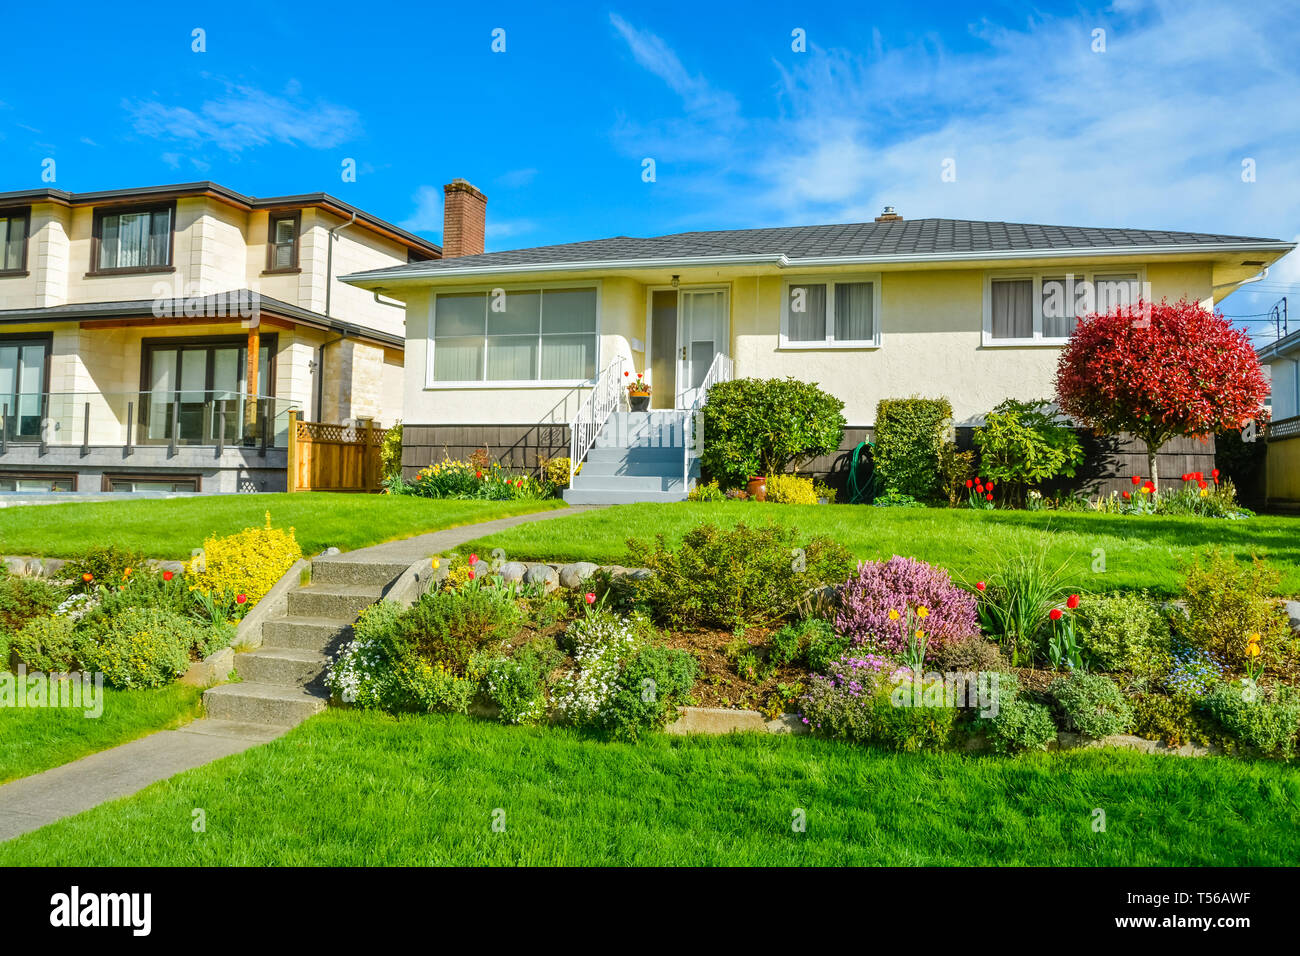 Average Family Residential House With Landscaped Yard On Blue Sky